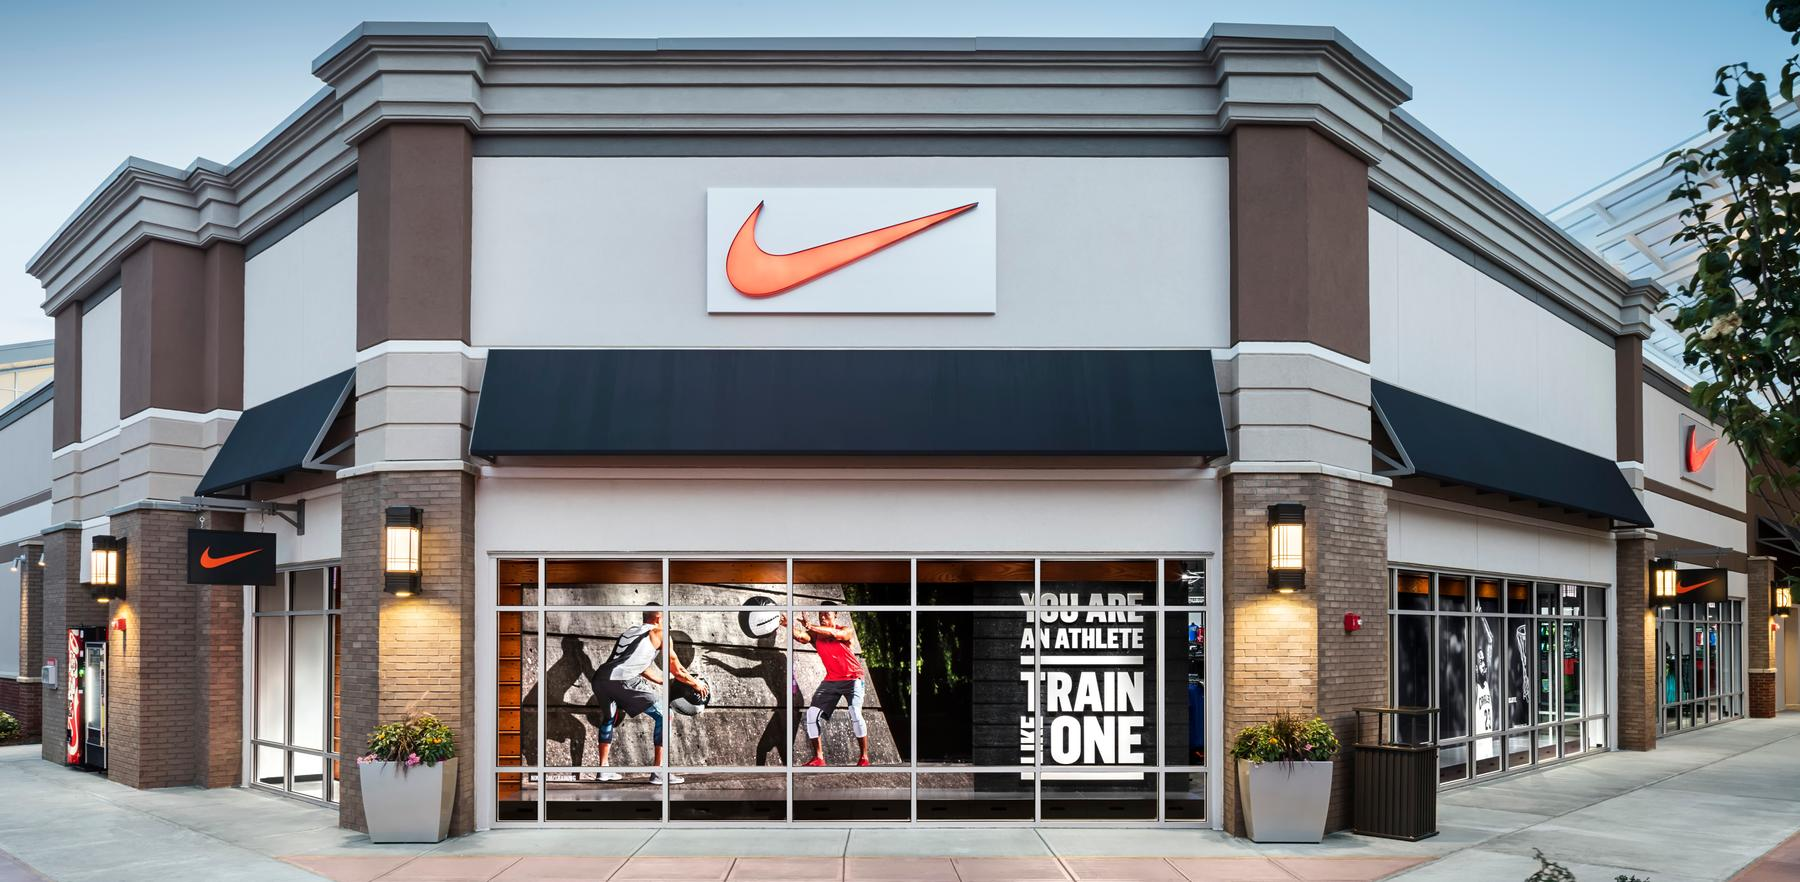 Nike outlet gallery wallpaper and free download for Wallpaper outlet